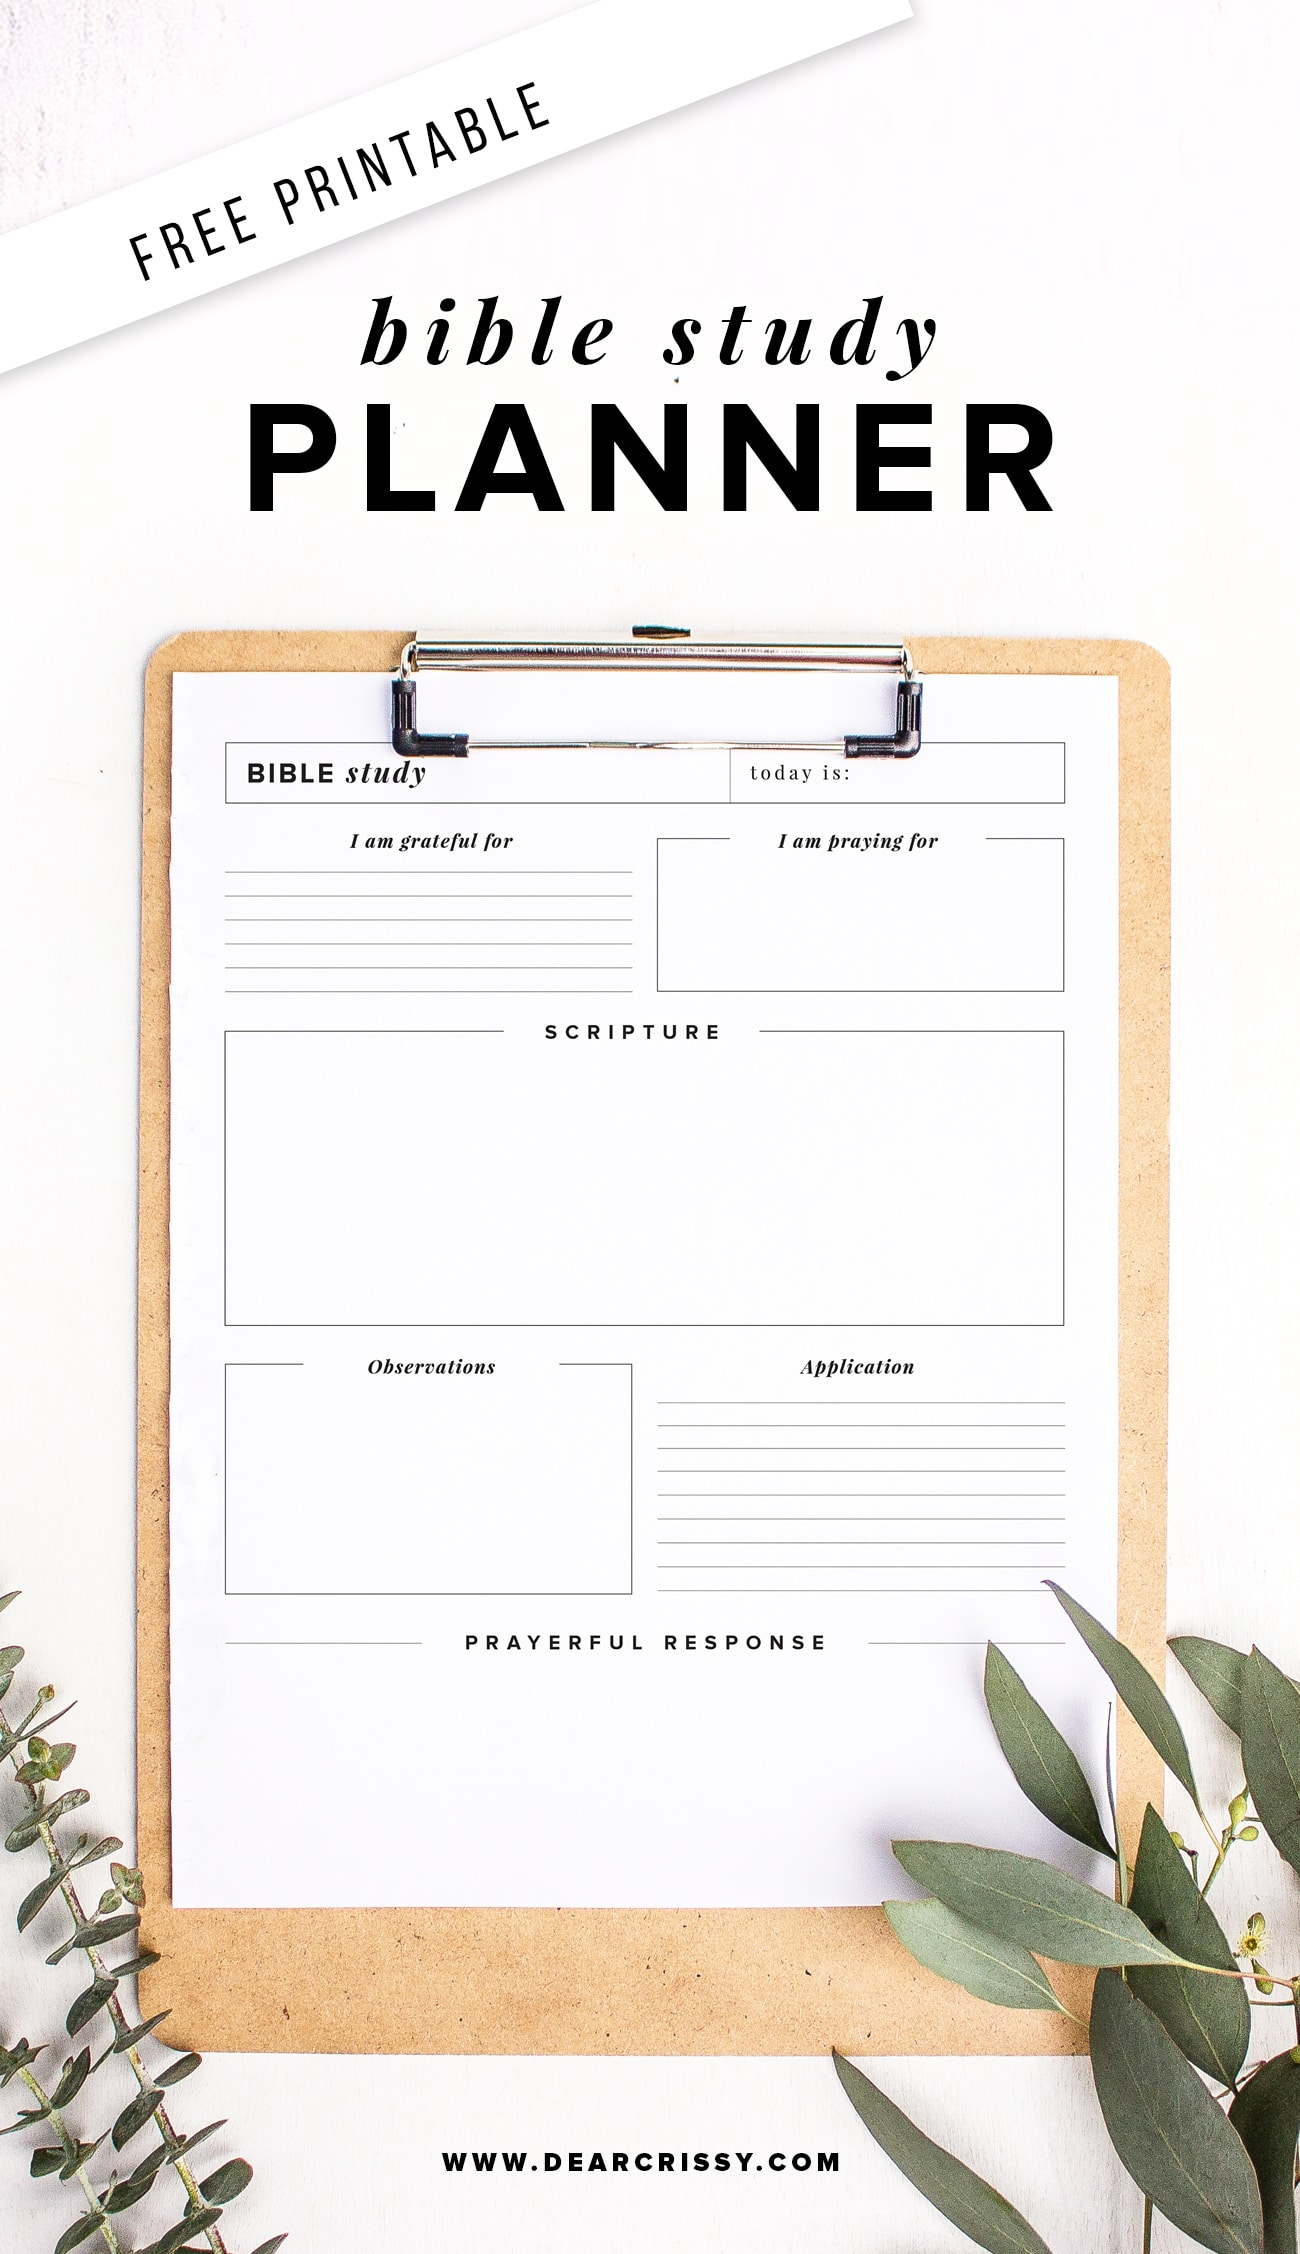 Free Printable Bible Study Planner - Soap Method Bible Study Worksheet! - Free Printable Bible Lessons For Women